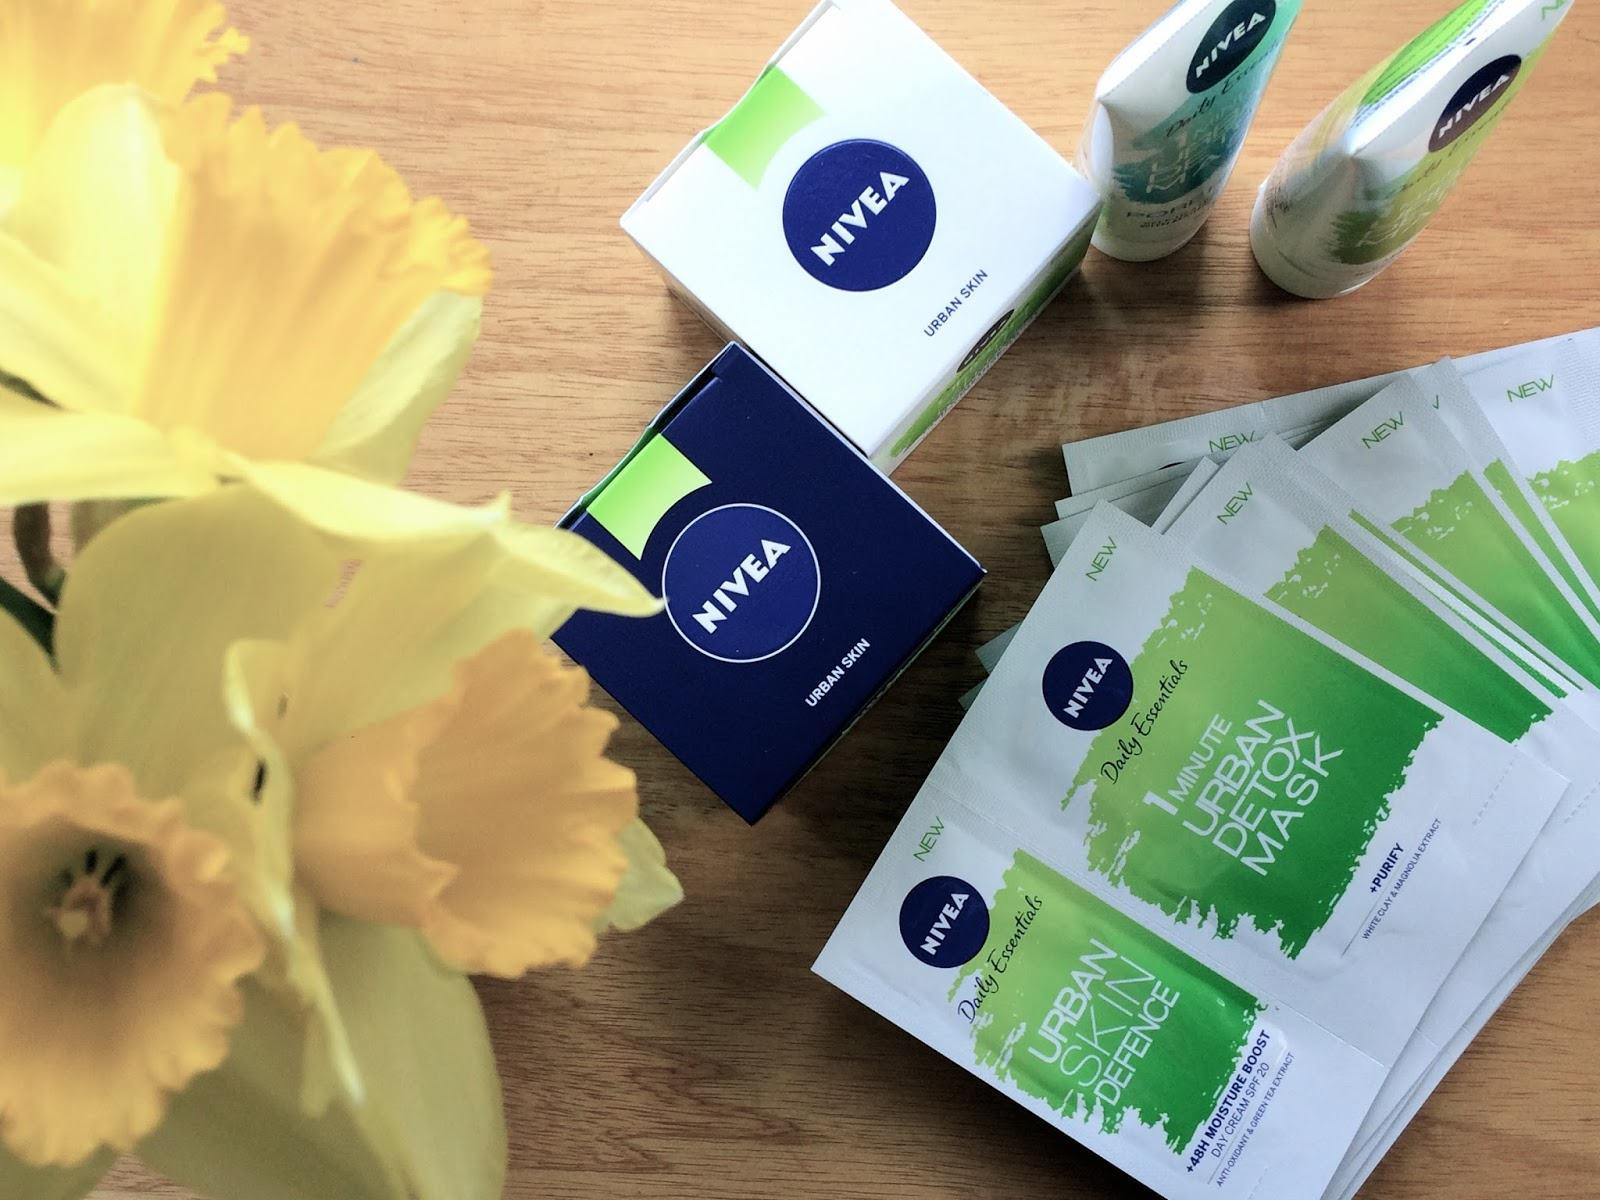 A selection of Nivea Urban Skin Detox products in a flat lay